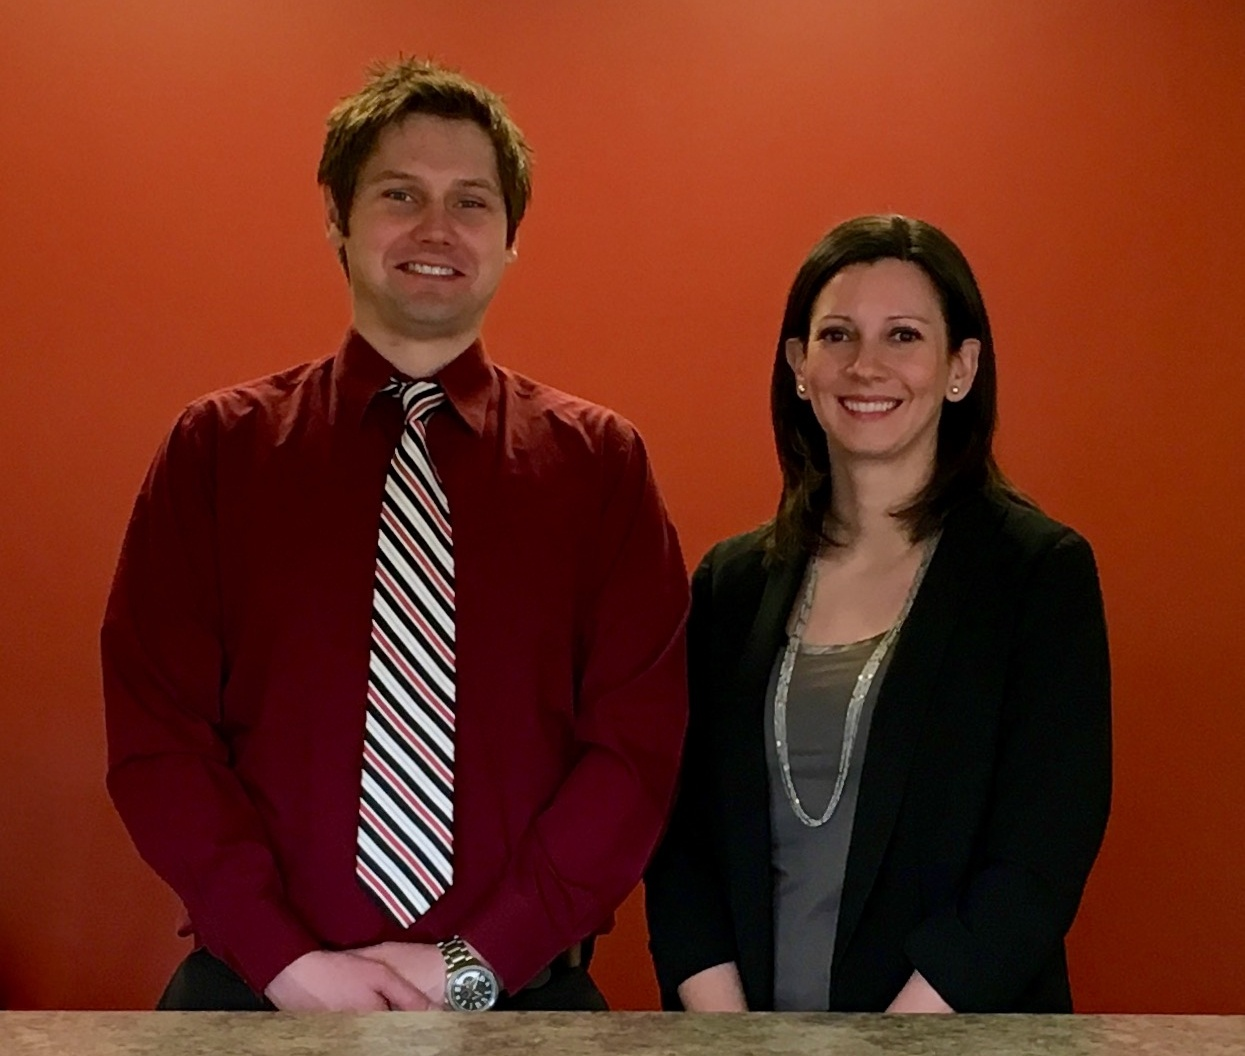 Dr. Ryan Edwards and Dr. Lindsey Stull